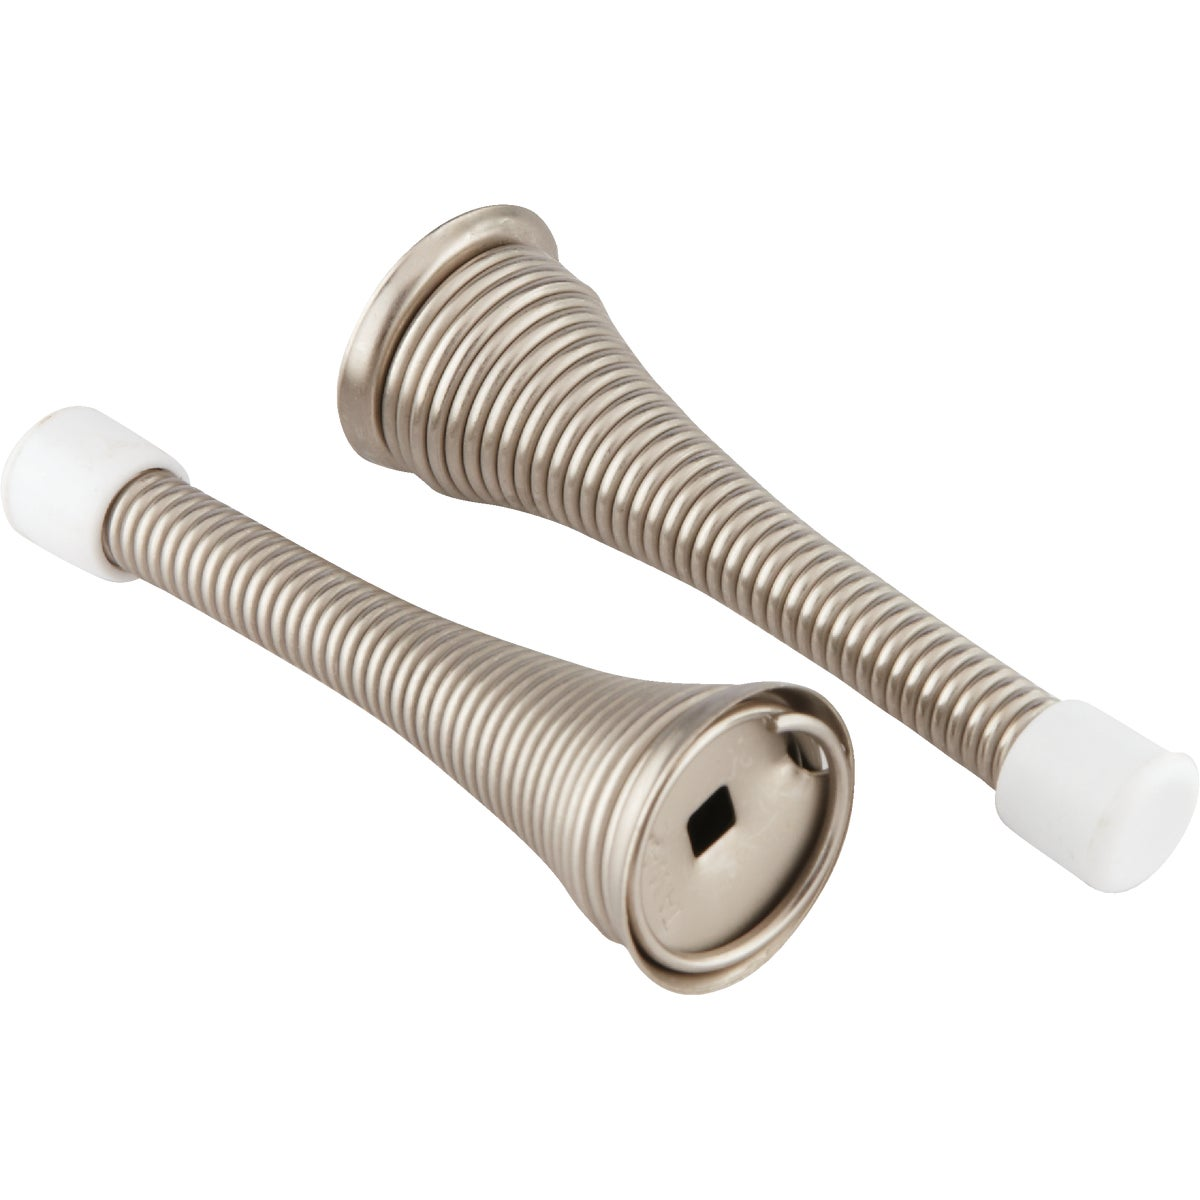 SN SPRING DOOR STOP - N331165 by National Mfg Co